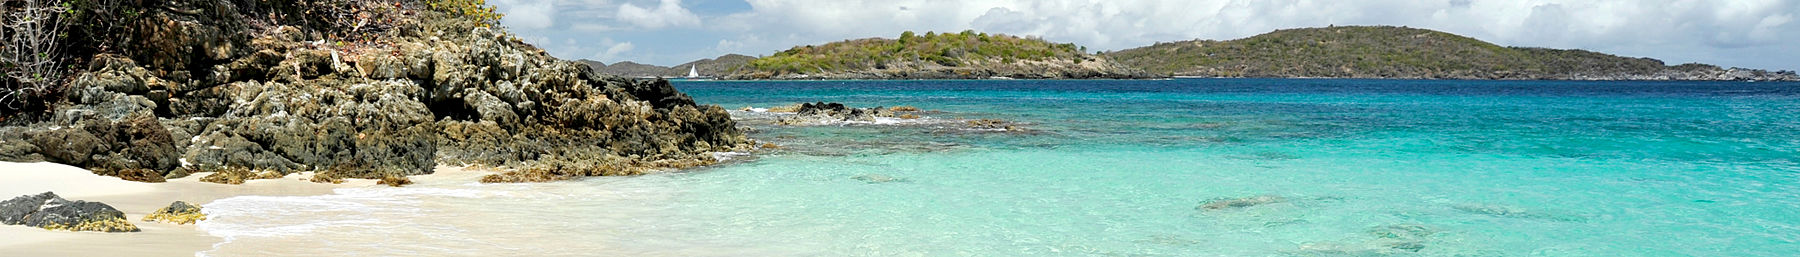 US Virgin Islands banner Turtle Bay Beach.jpg